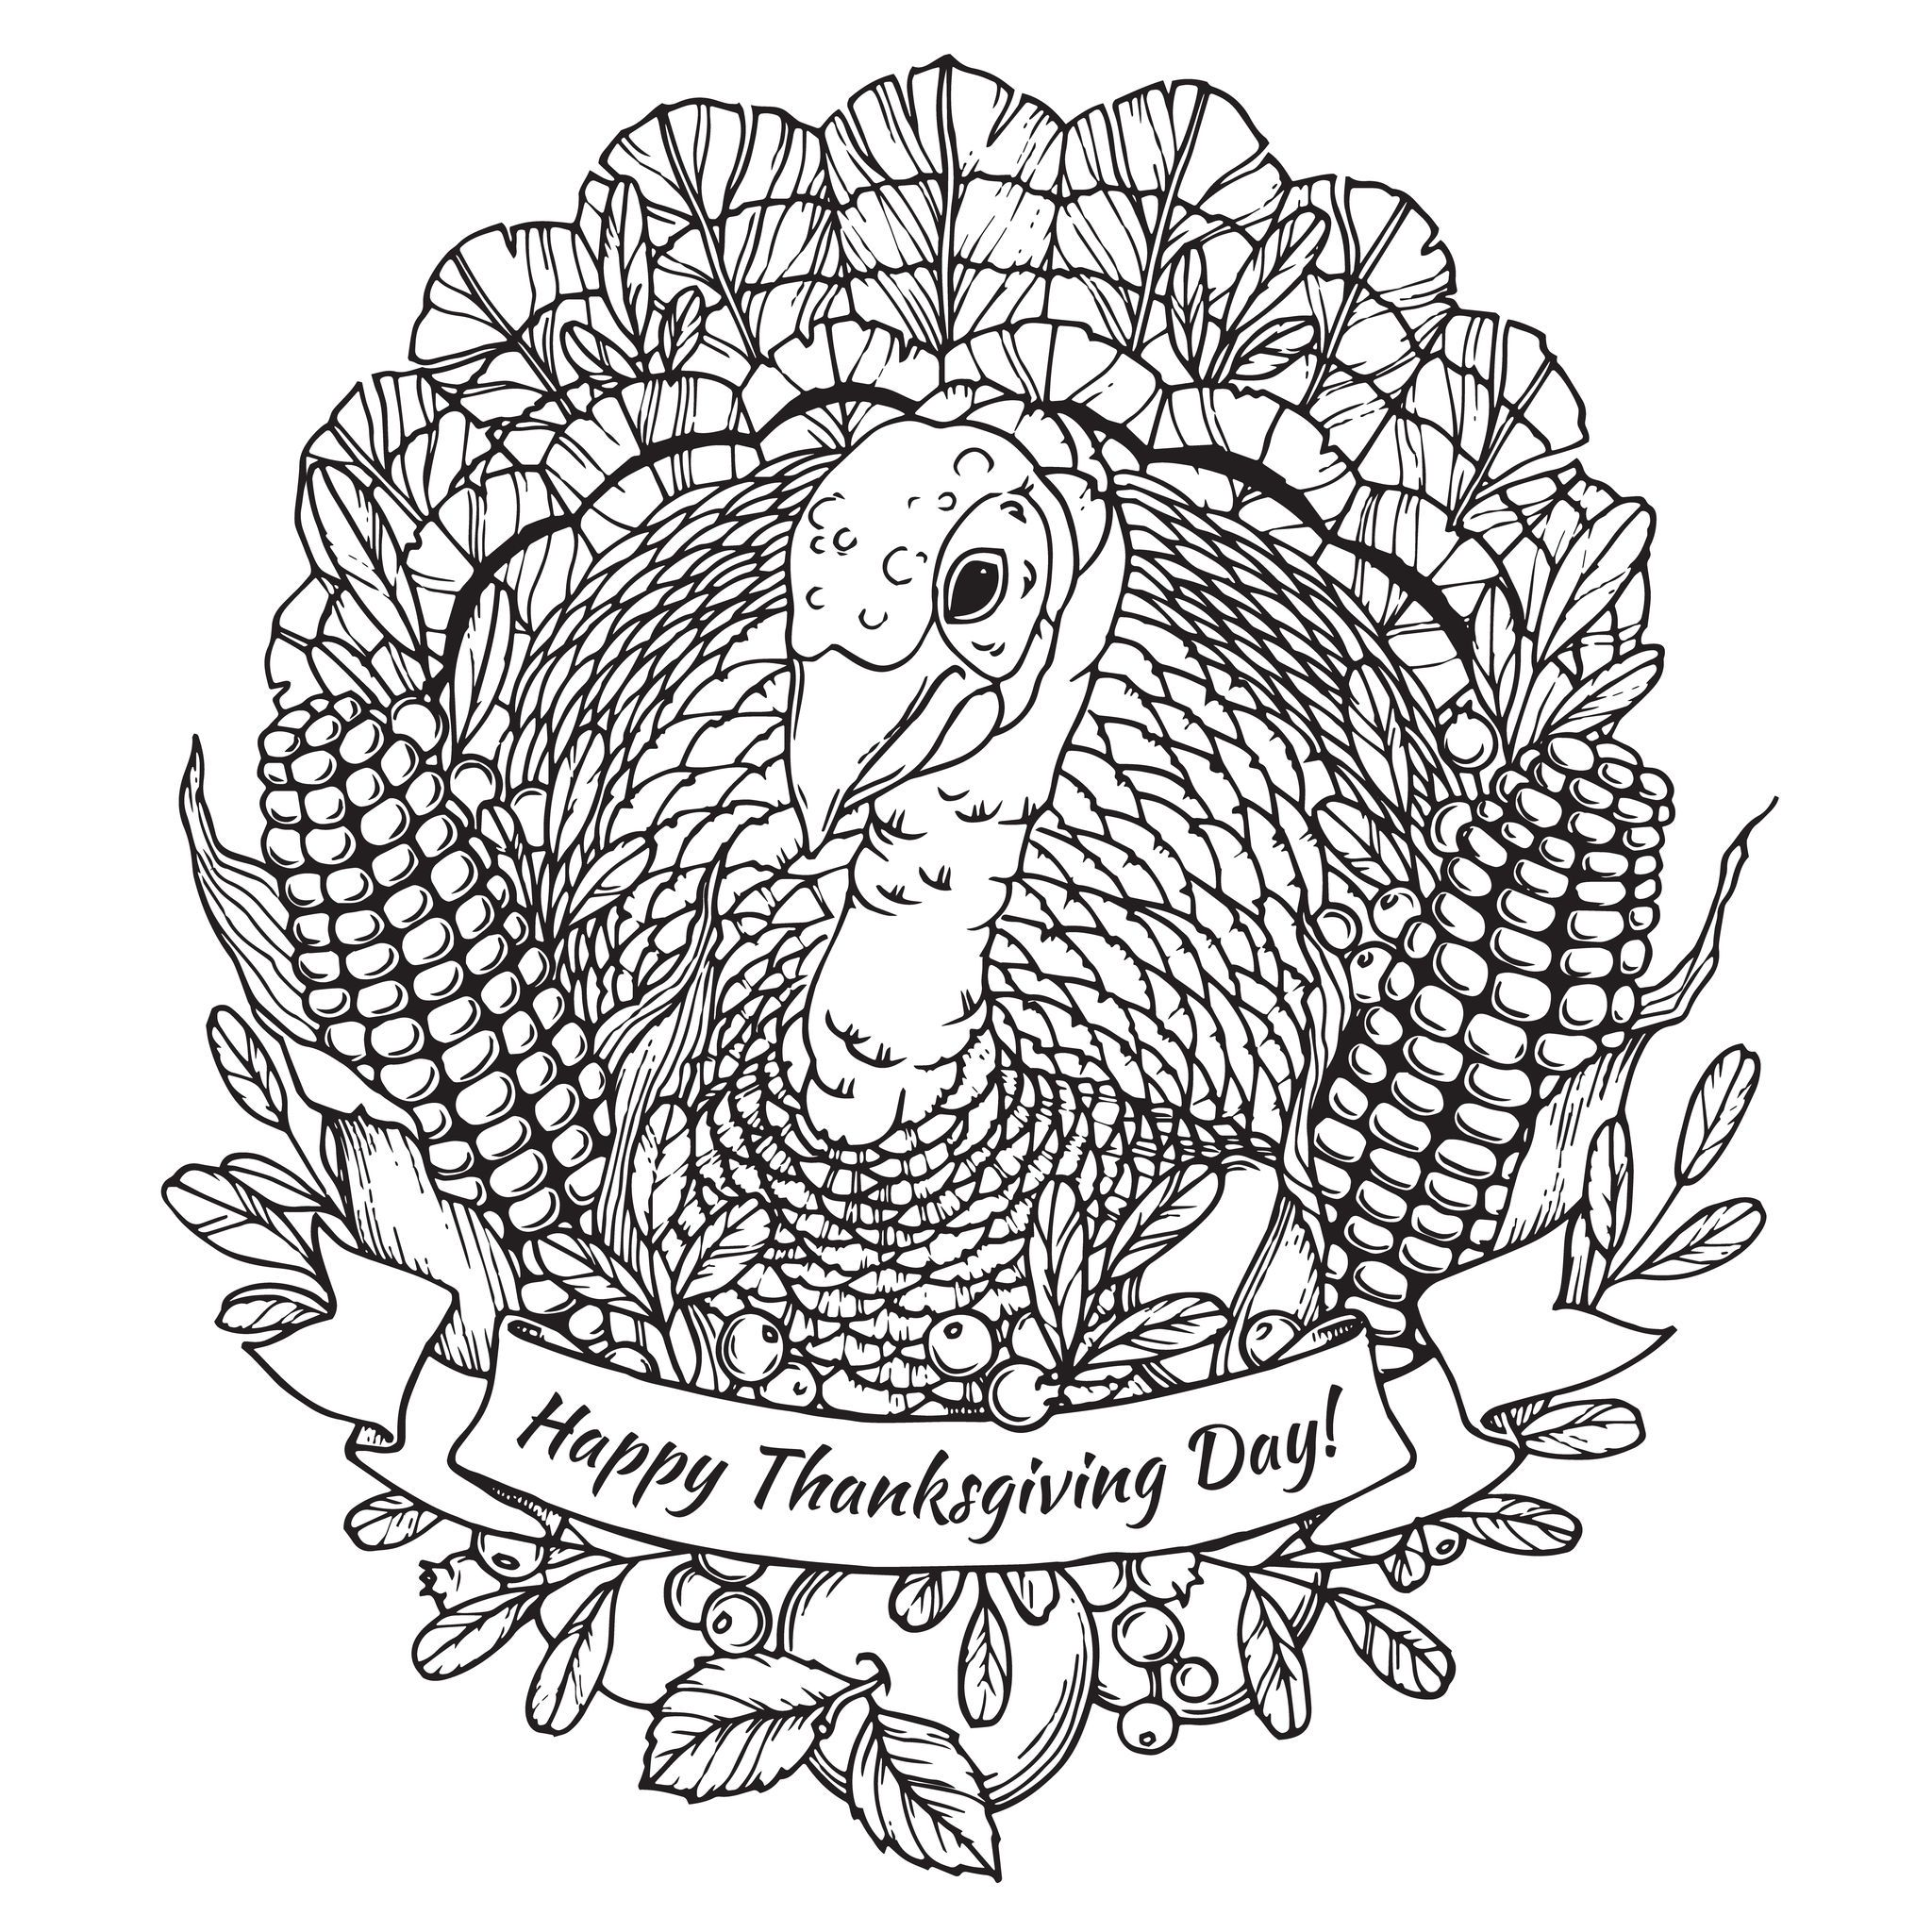 Thanksgiving day coloring page with turkey, vegetables (corn) and ...